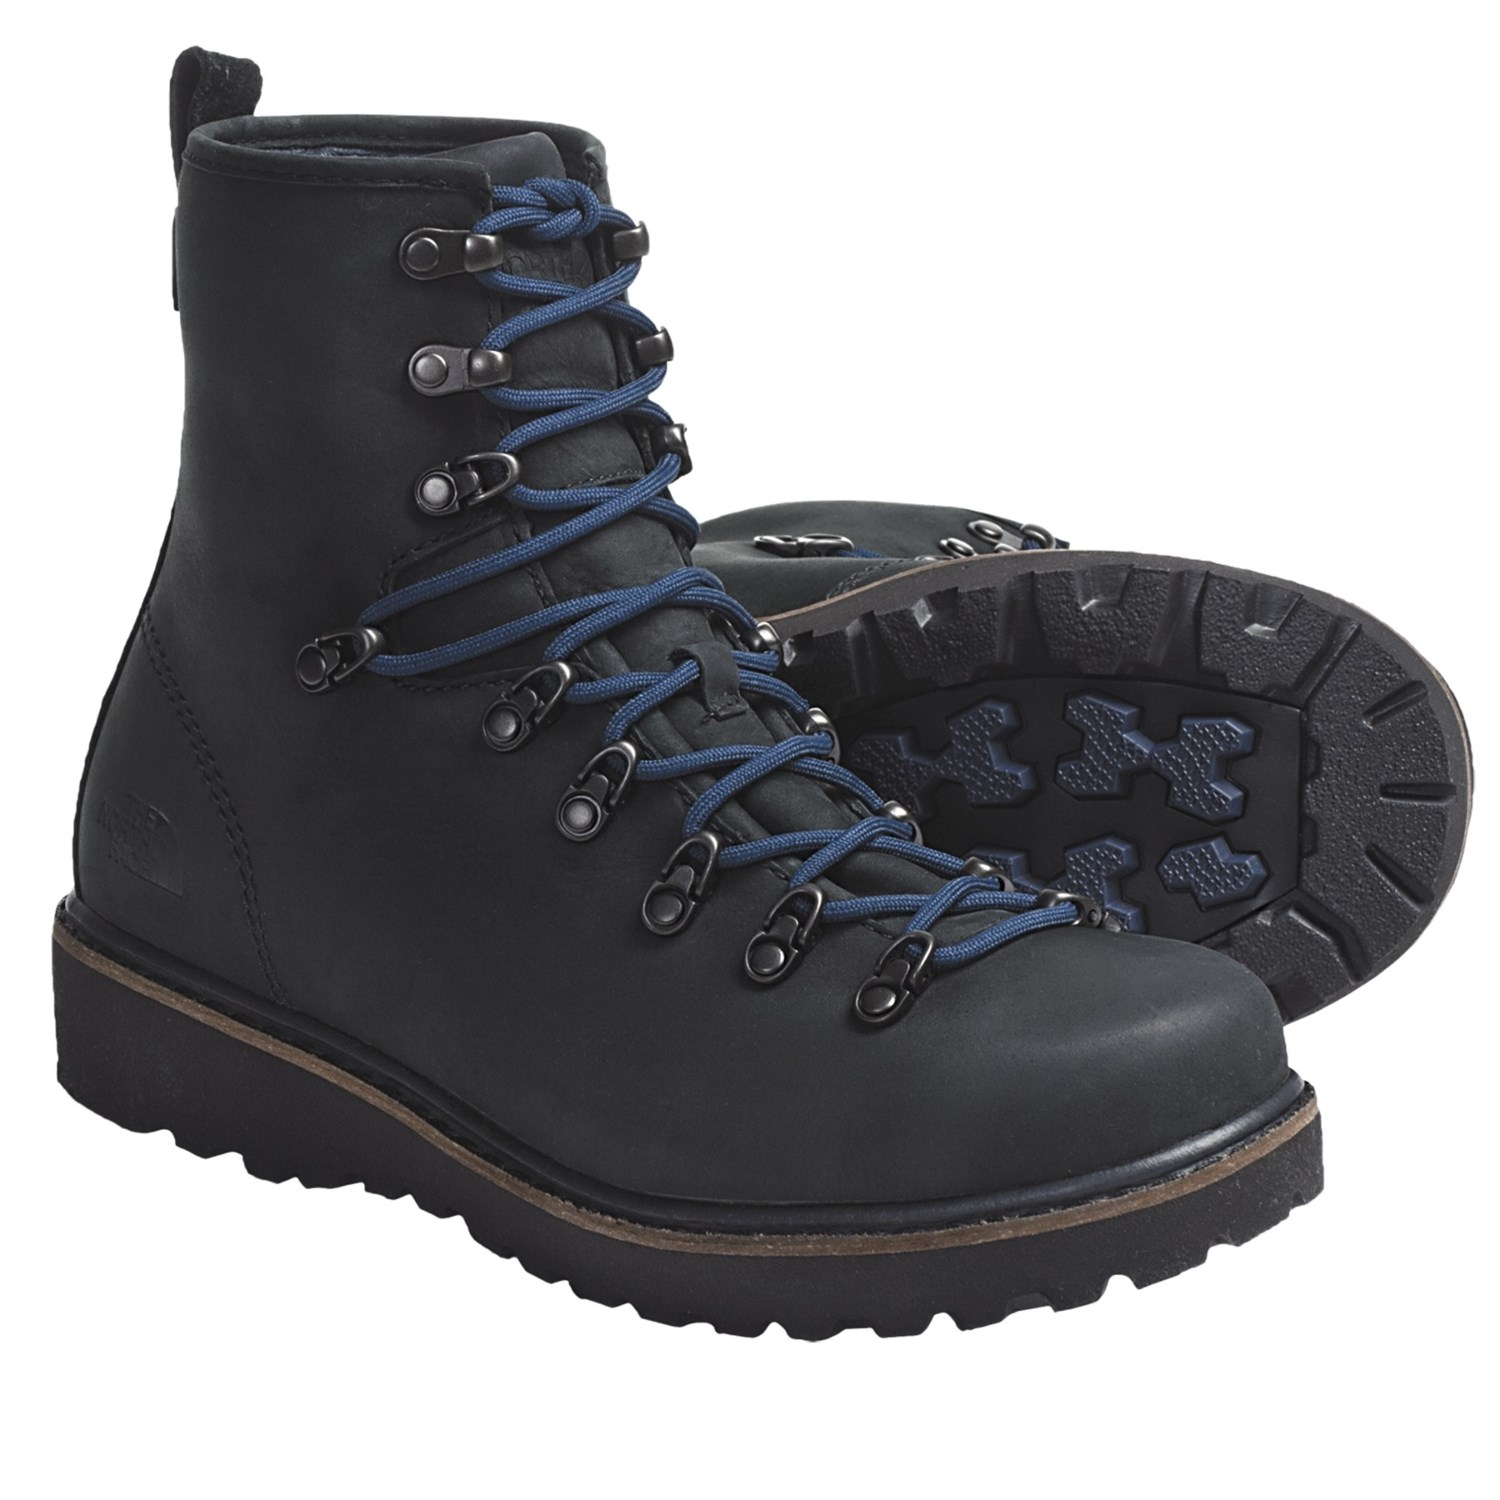 North Face Men;s Snowfuse Winter Boot   Division of Global